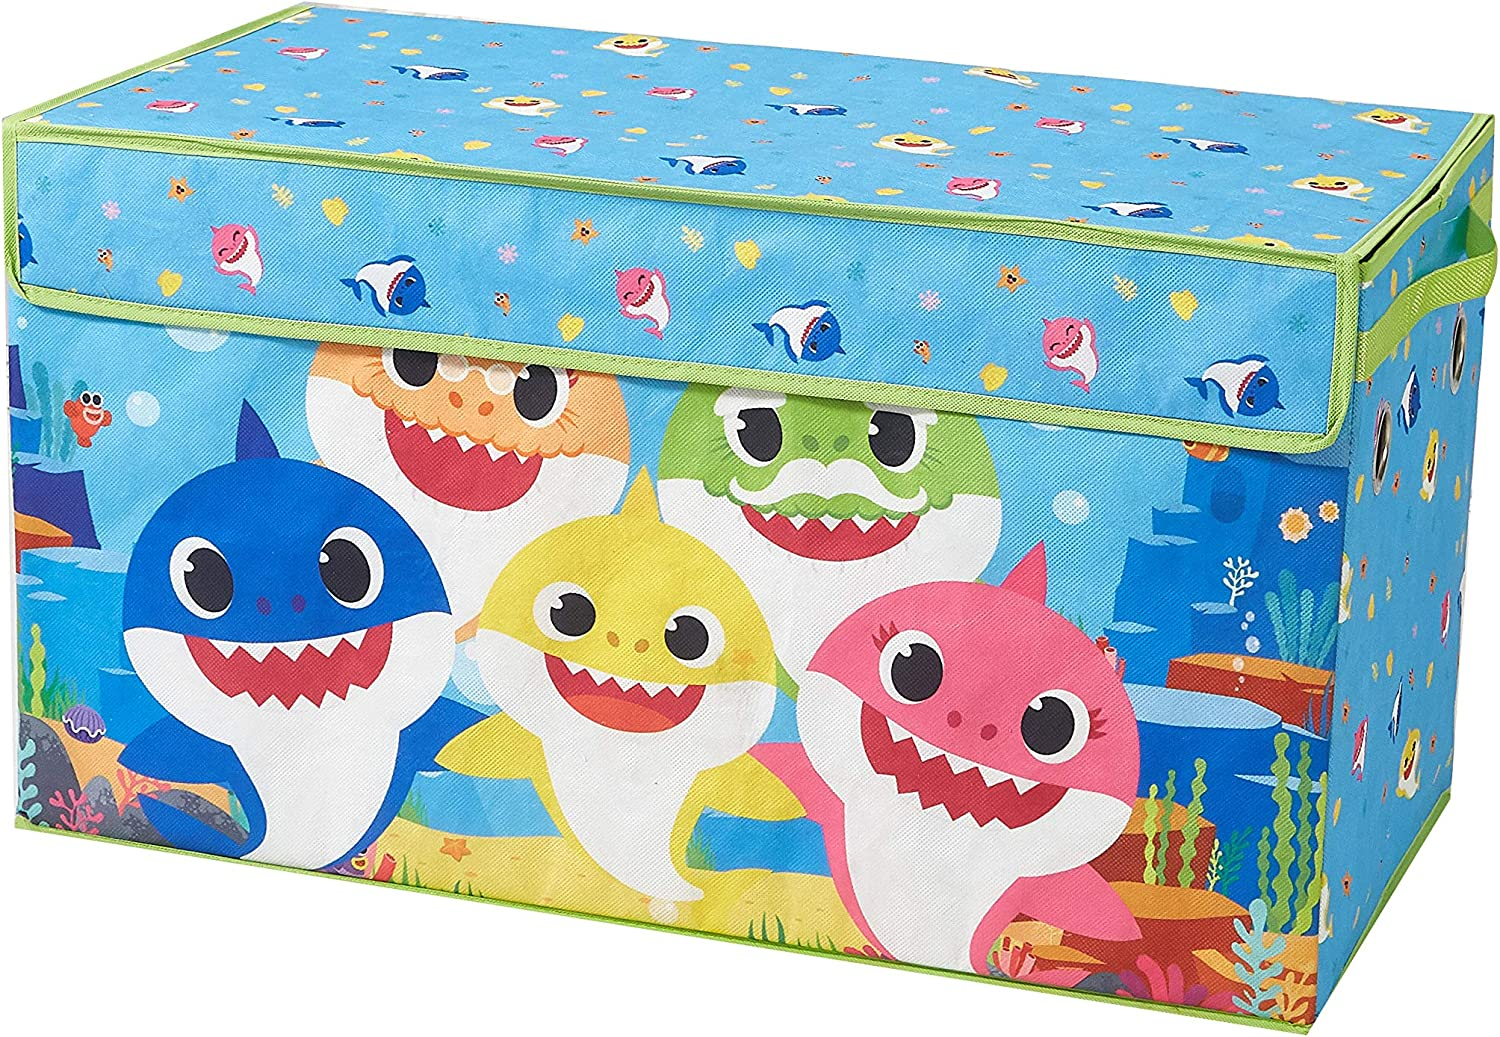 Idea Nuova Baby Shark Collapsible Children's Toy Storage Trunk, Durable with Lid